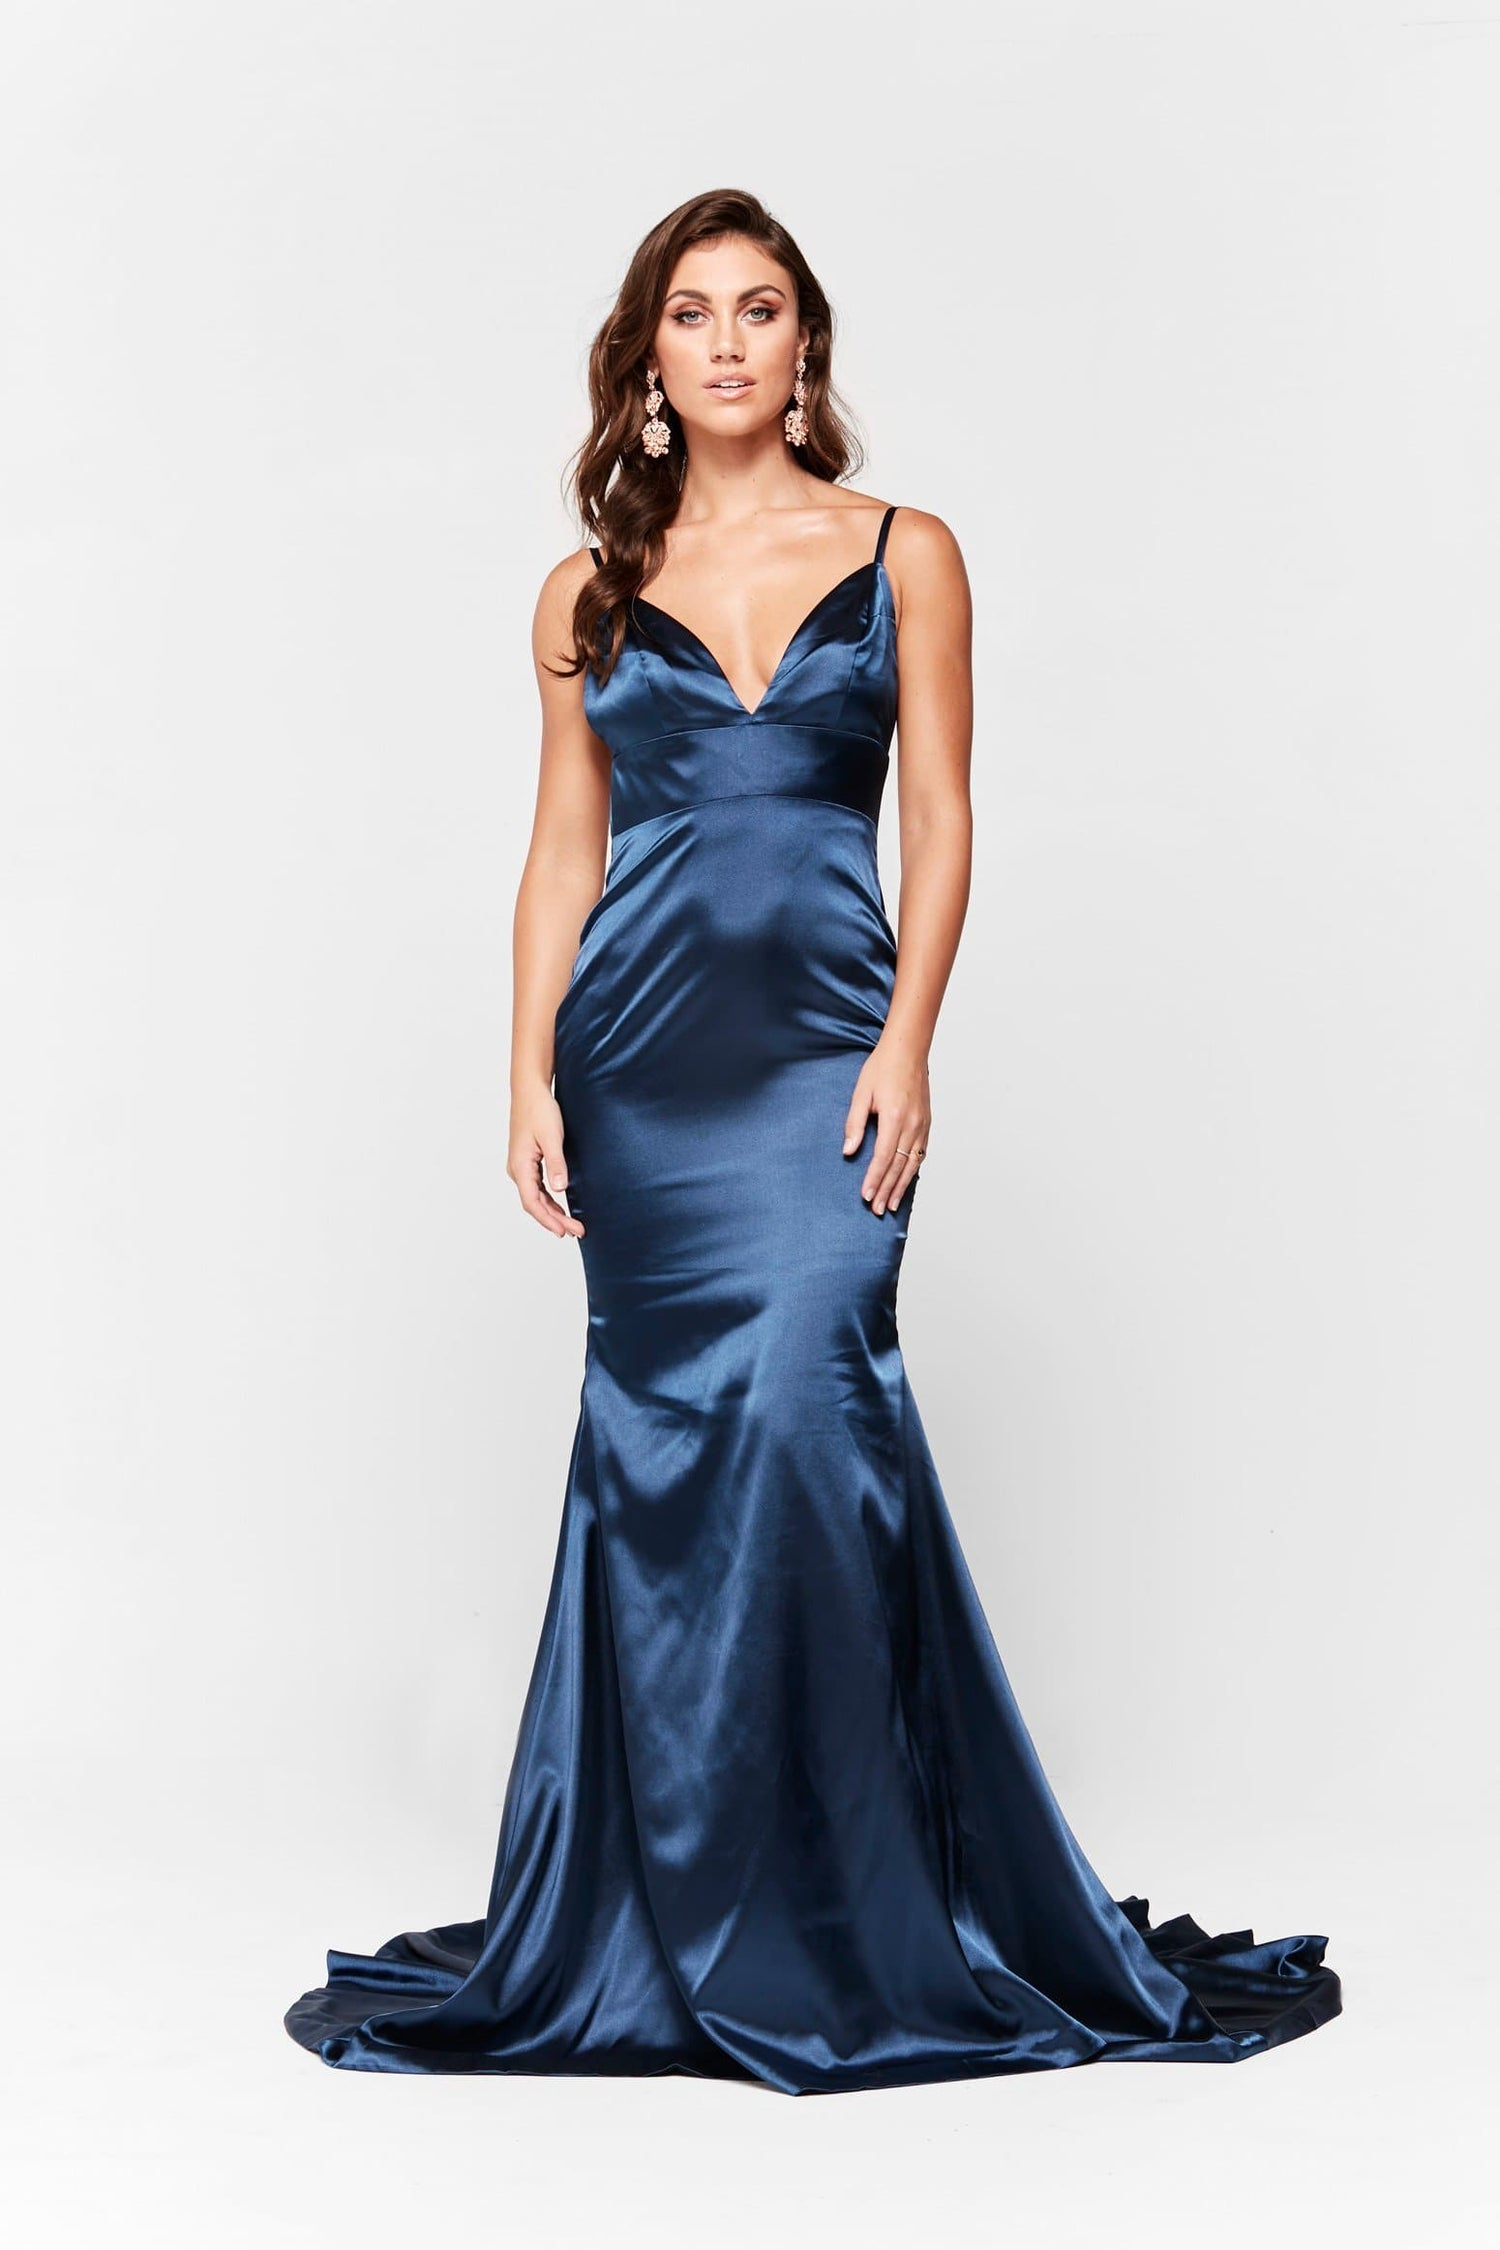 A&N Vivian - Navy Satin Gown with Plunge V Neck